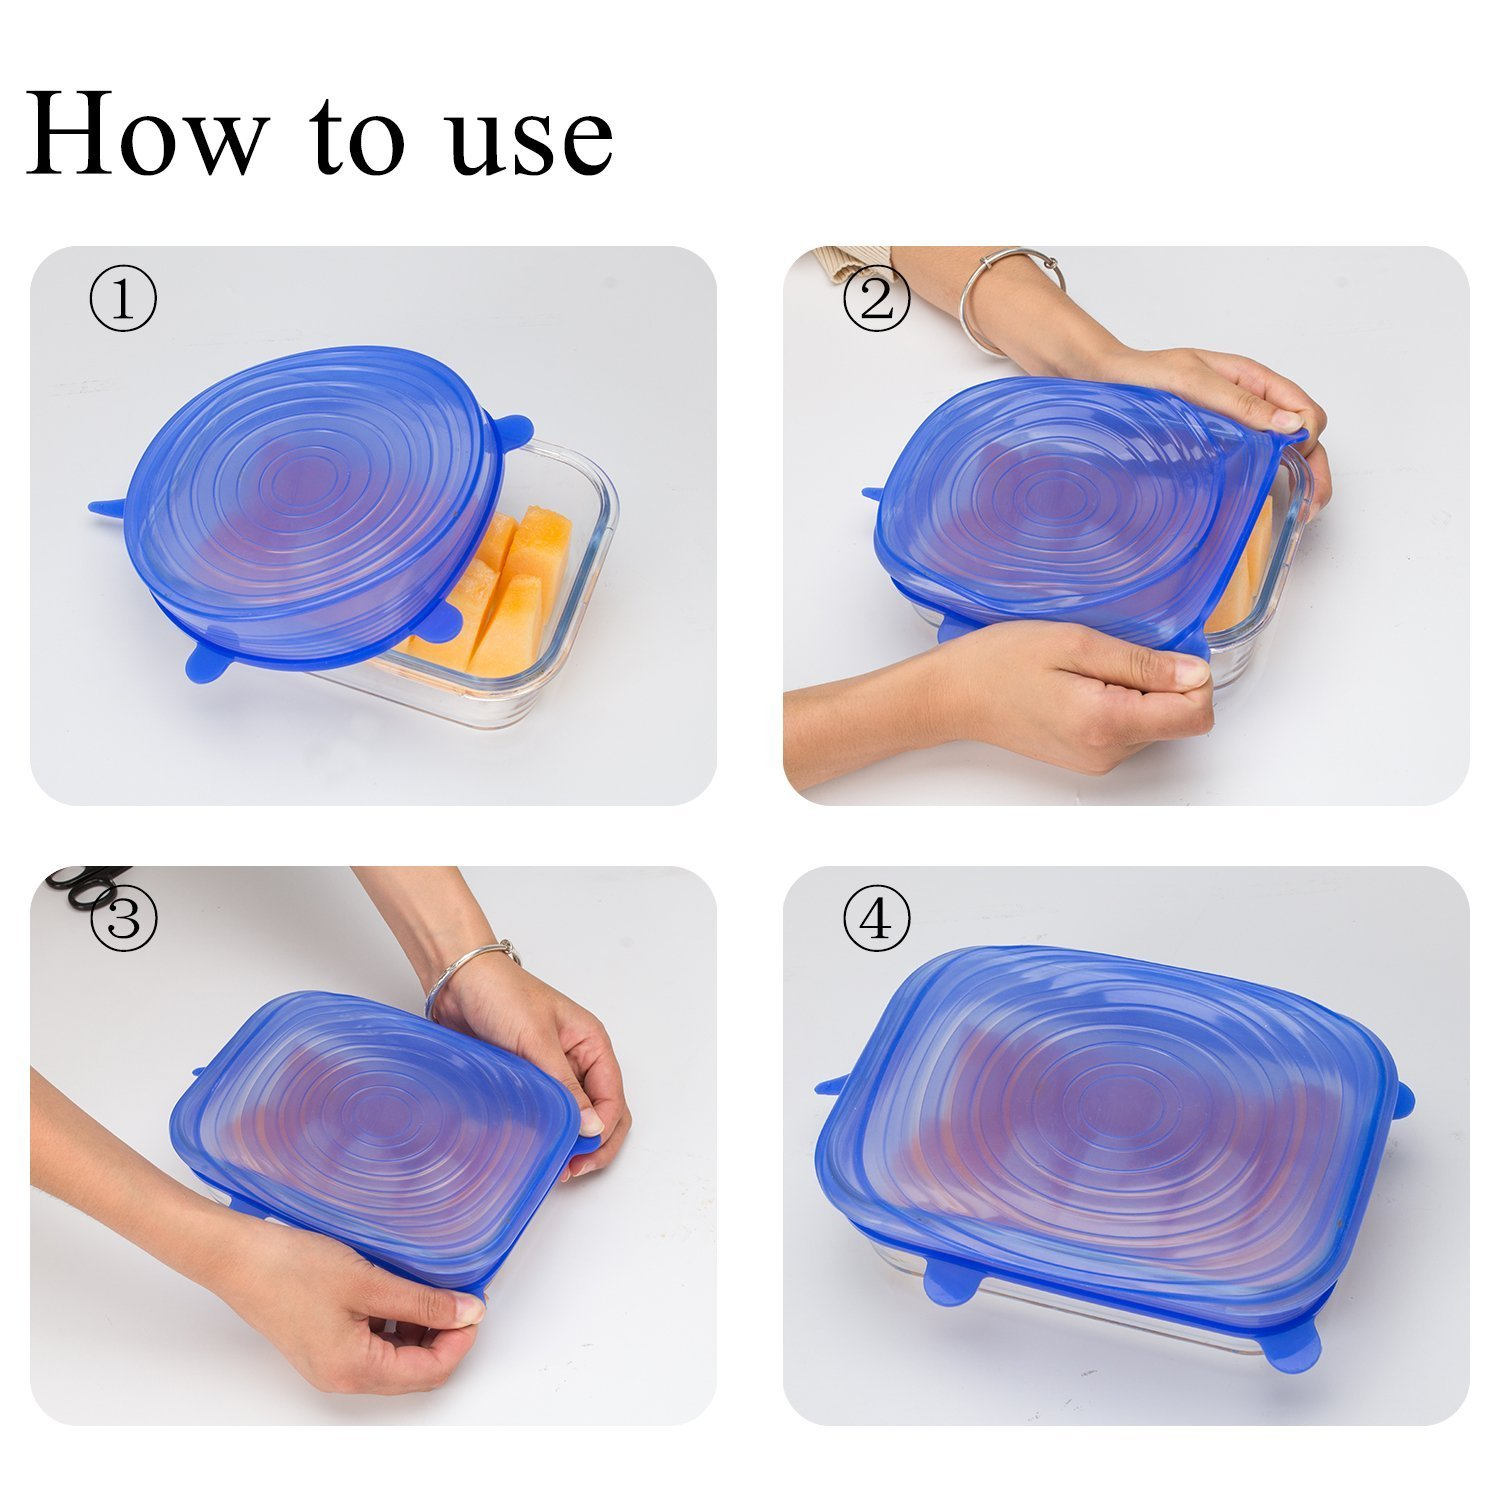 Ali-Mak 6 Pack Silicone Stretch Lids Universal Tupperware Lids to Keep Food Fresh, Preserve Fruit, Cover Jars Dishwasher Safe, 6 Different Sizes, Silicone Food Covers for Cans, Bowls, Plates, Mugs